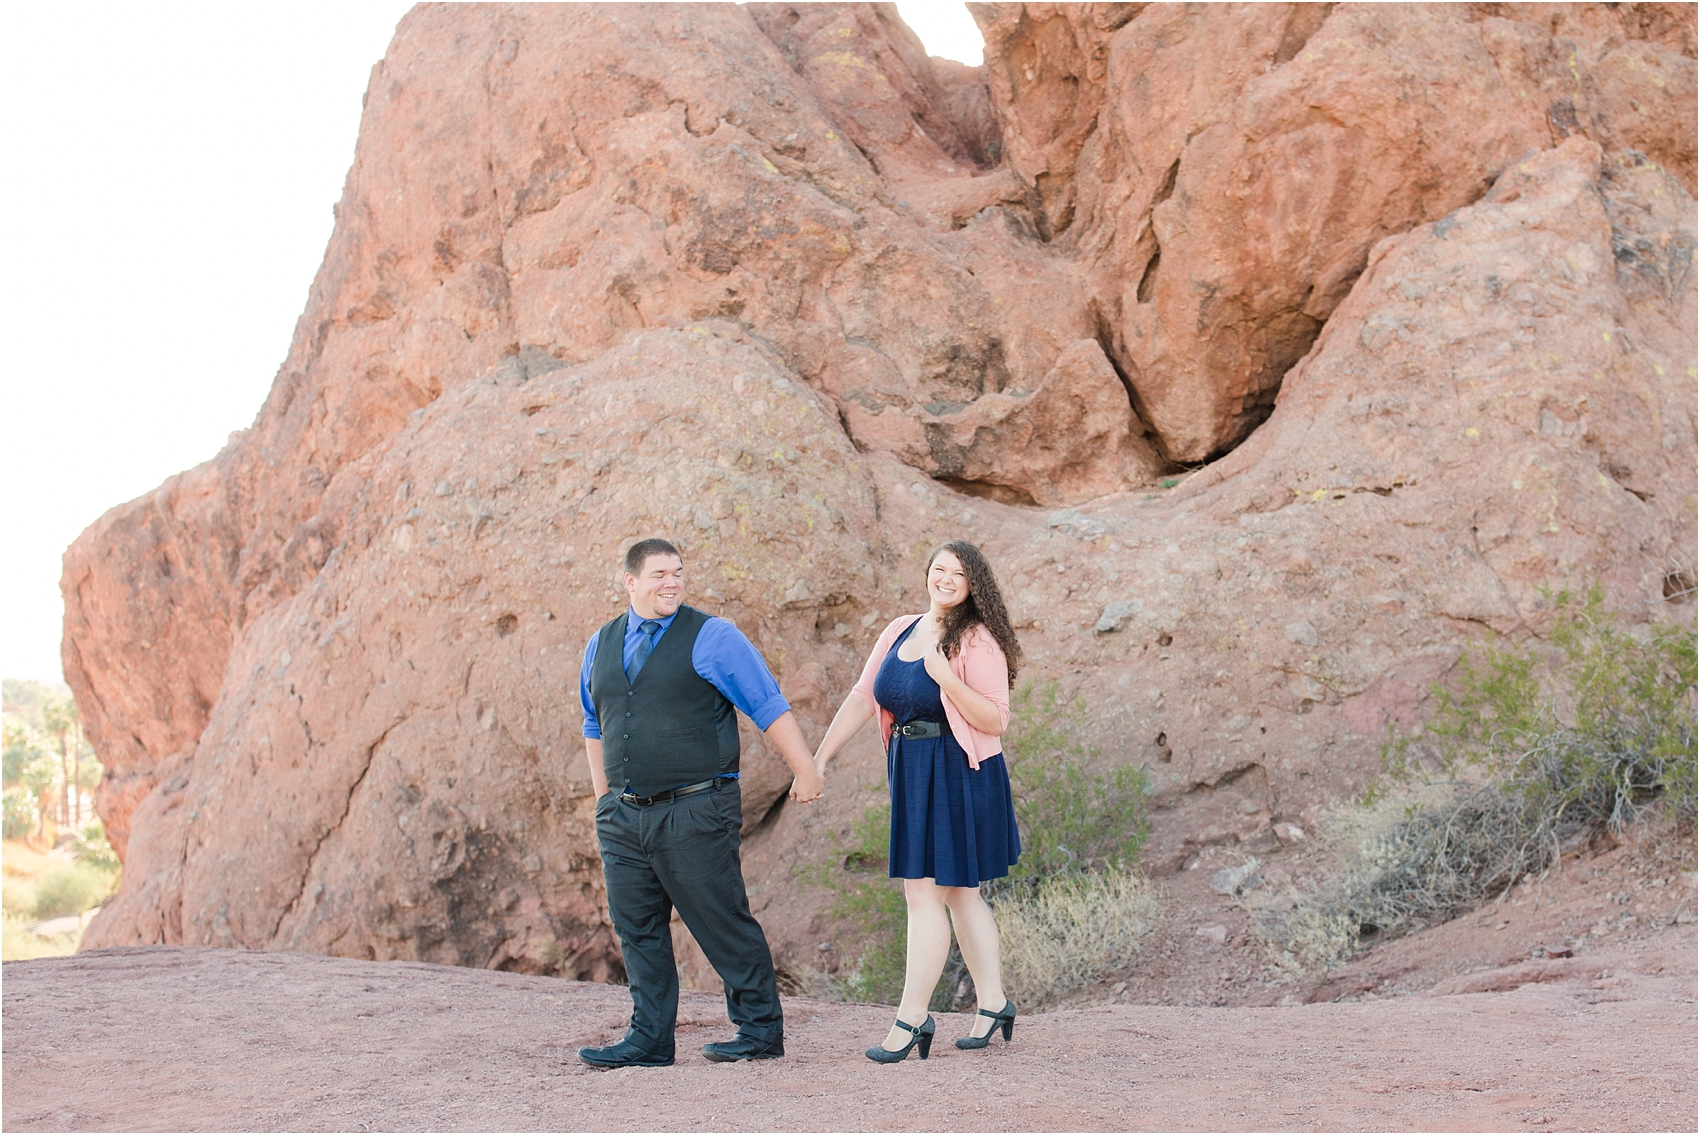 romantic-desert-engagement-photos-in-scottsdale-arizona-courtney-carolyn-photography-by-katelyn-james_0013.jpg